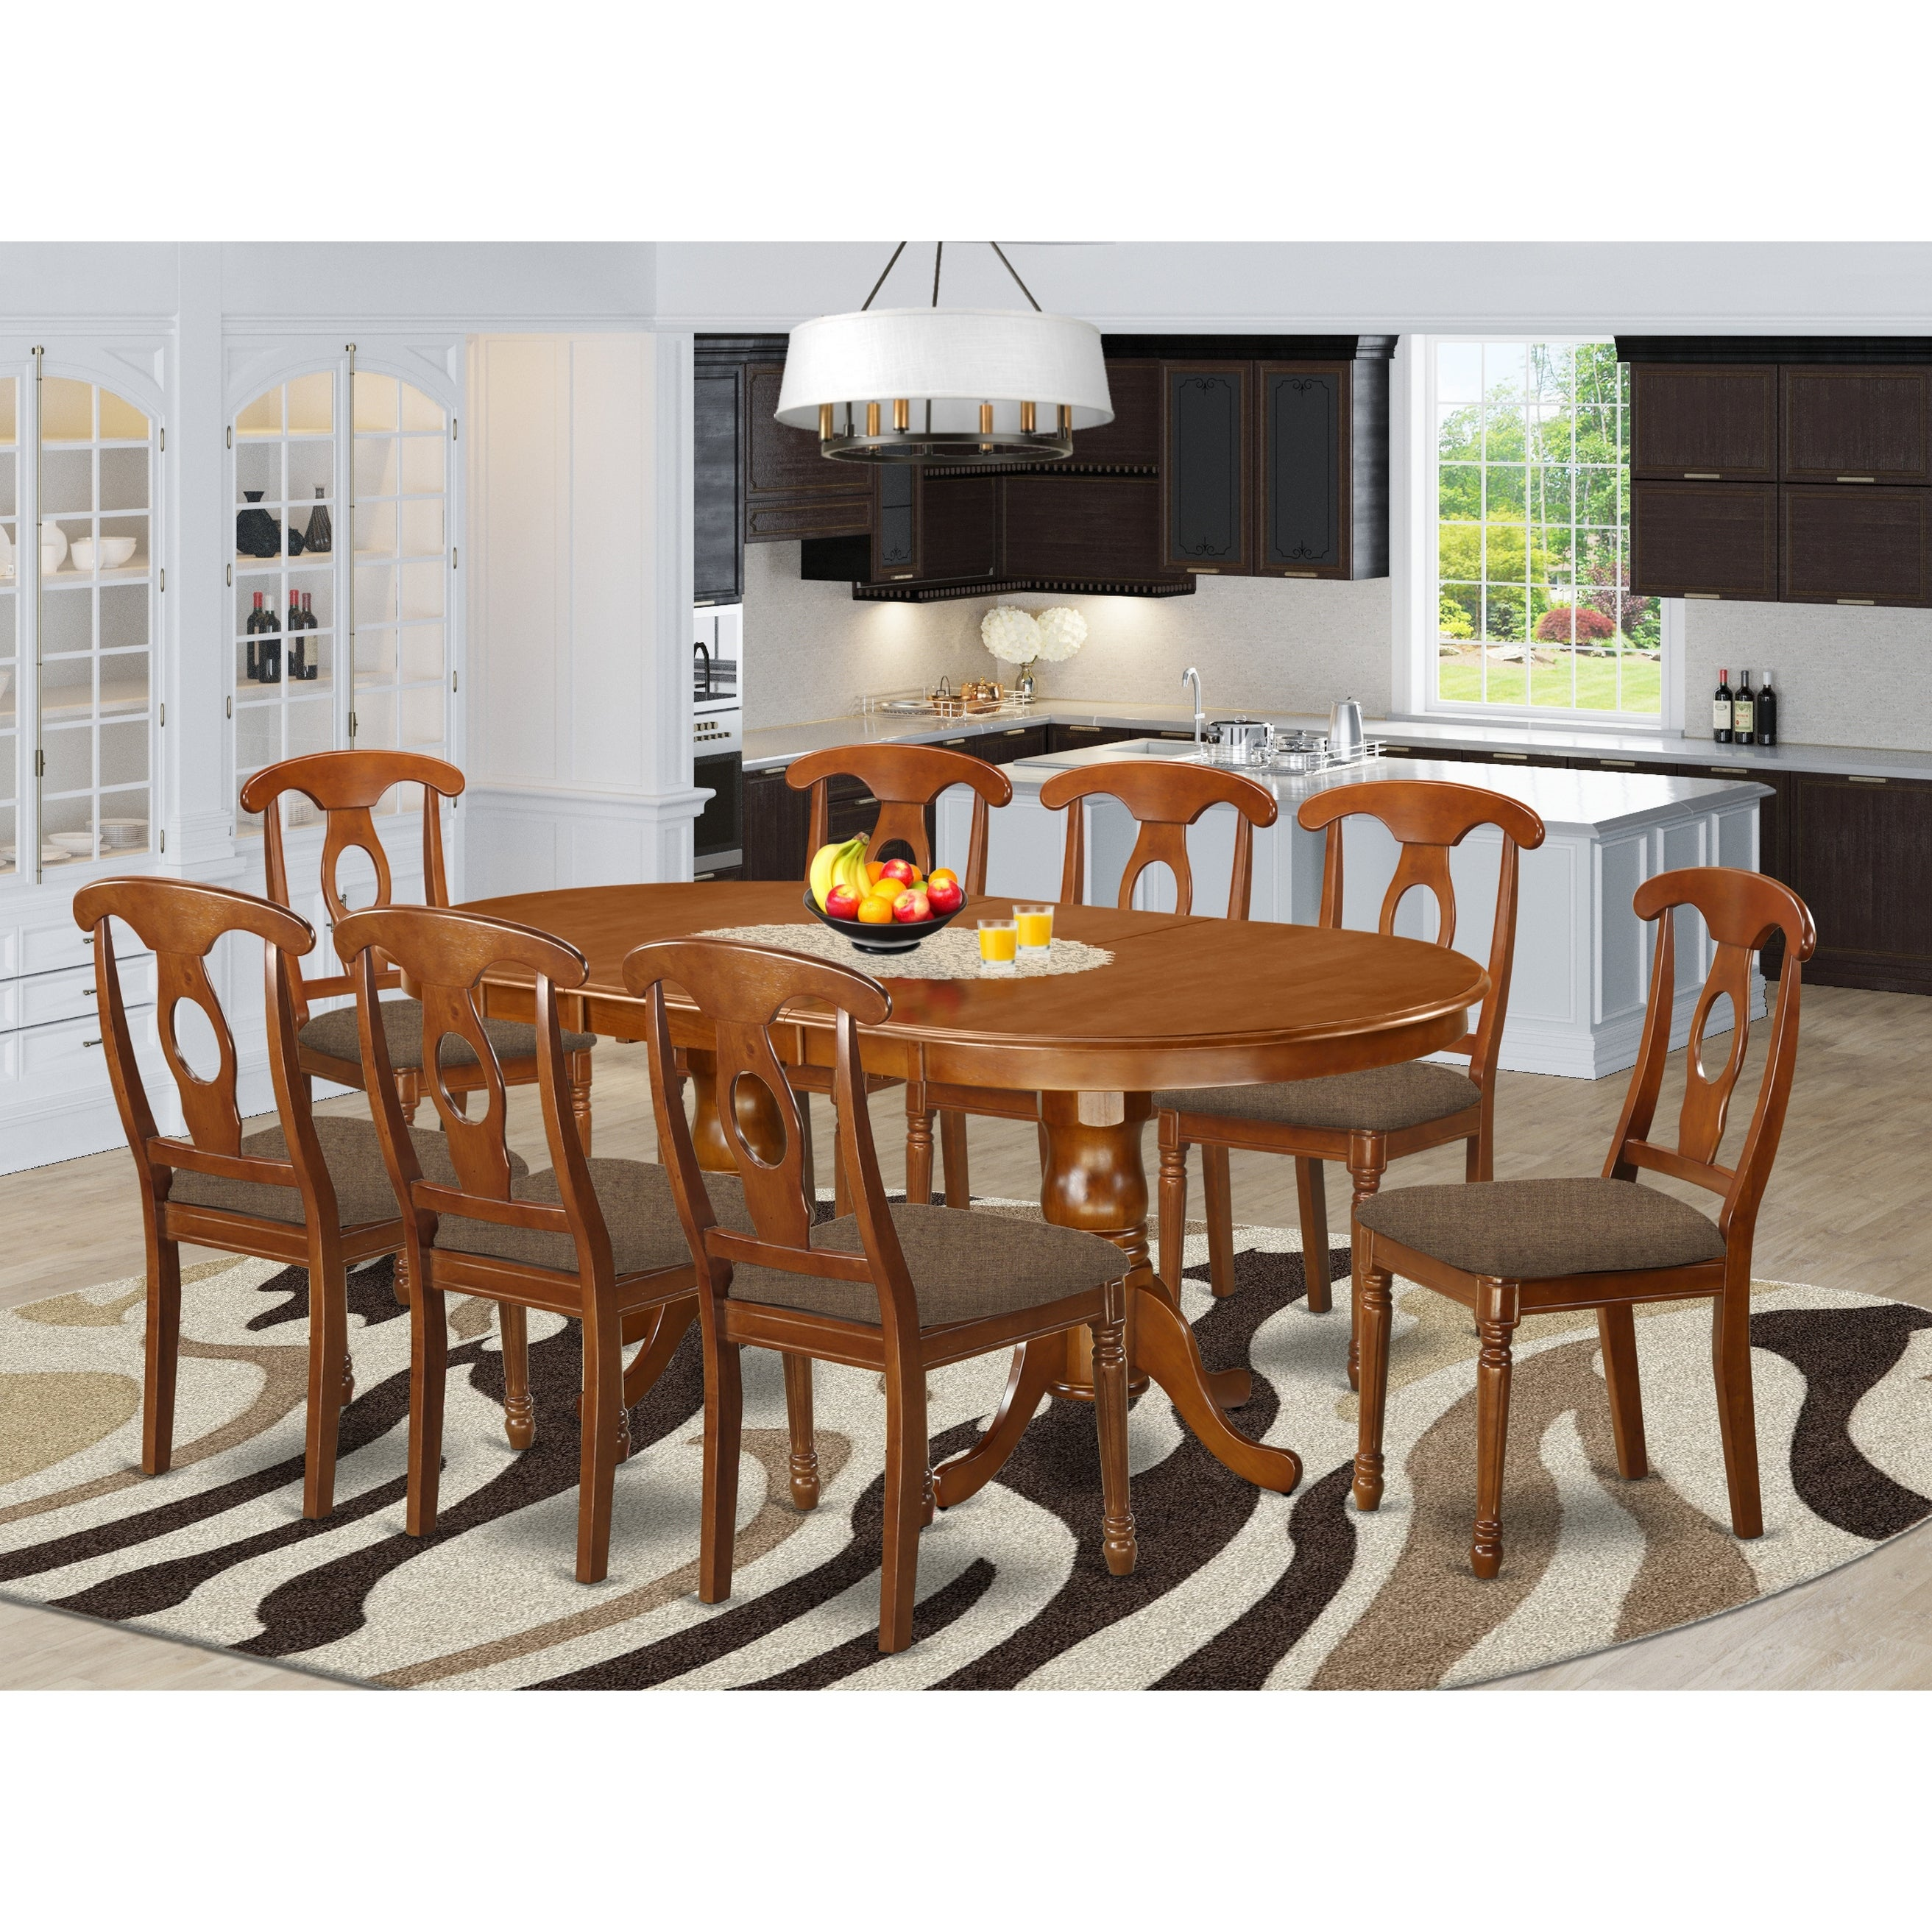 Picture of: Plna9 Sbr 9 Pc Formal Dining Room Set Dining Table With 8 Chairs Overstock 17676509